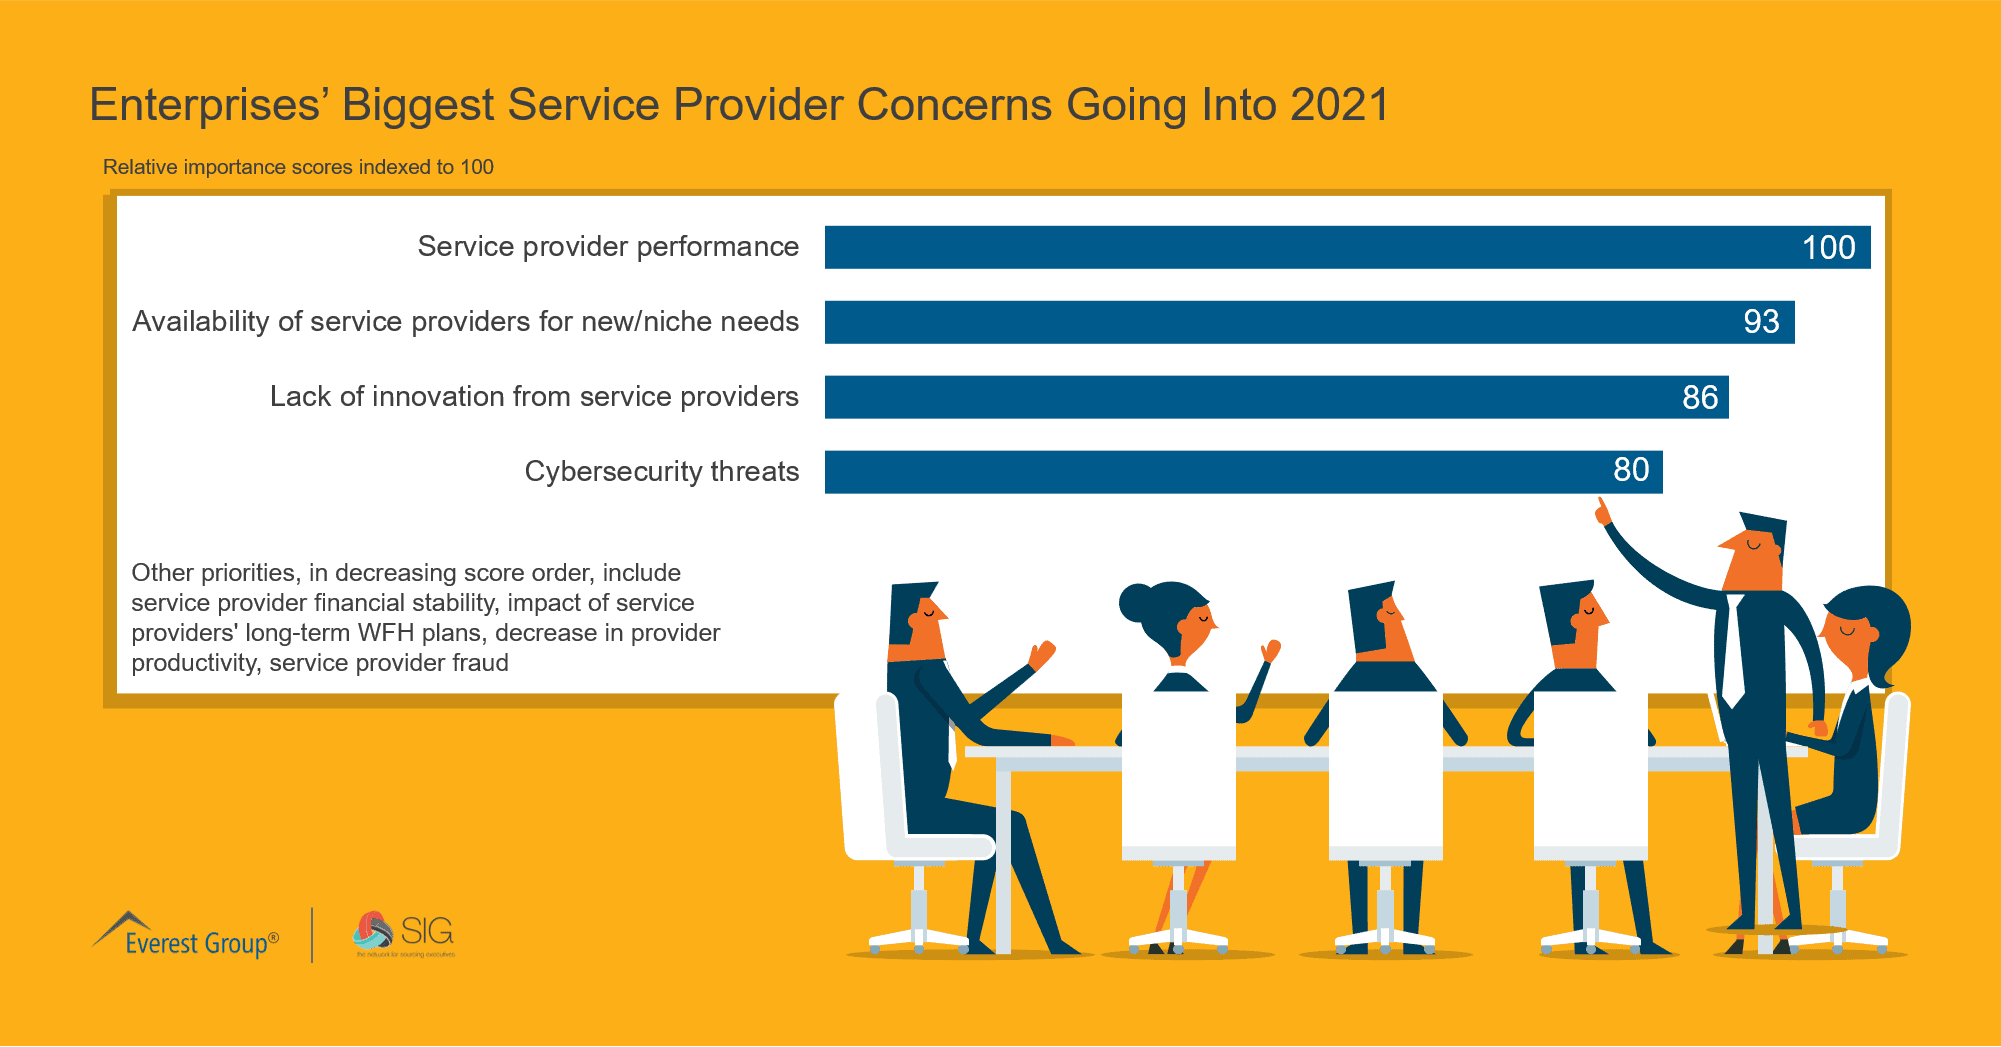 Enterprises' Biggest Service Provider Concerns Going Into 2021